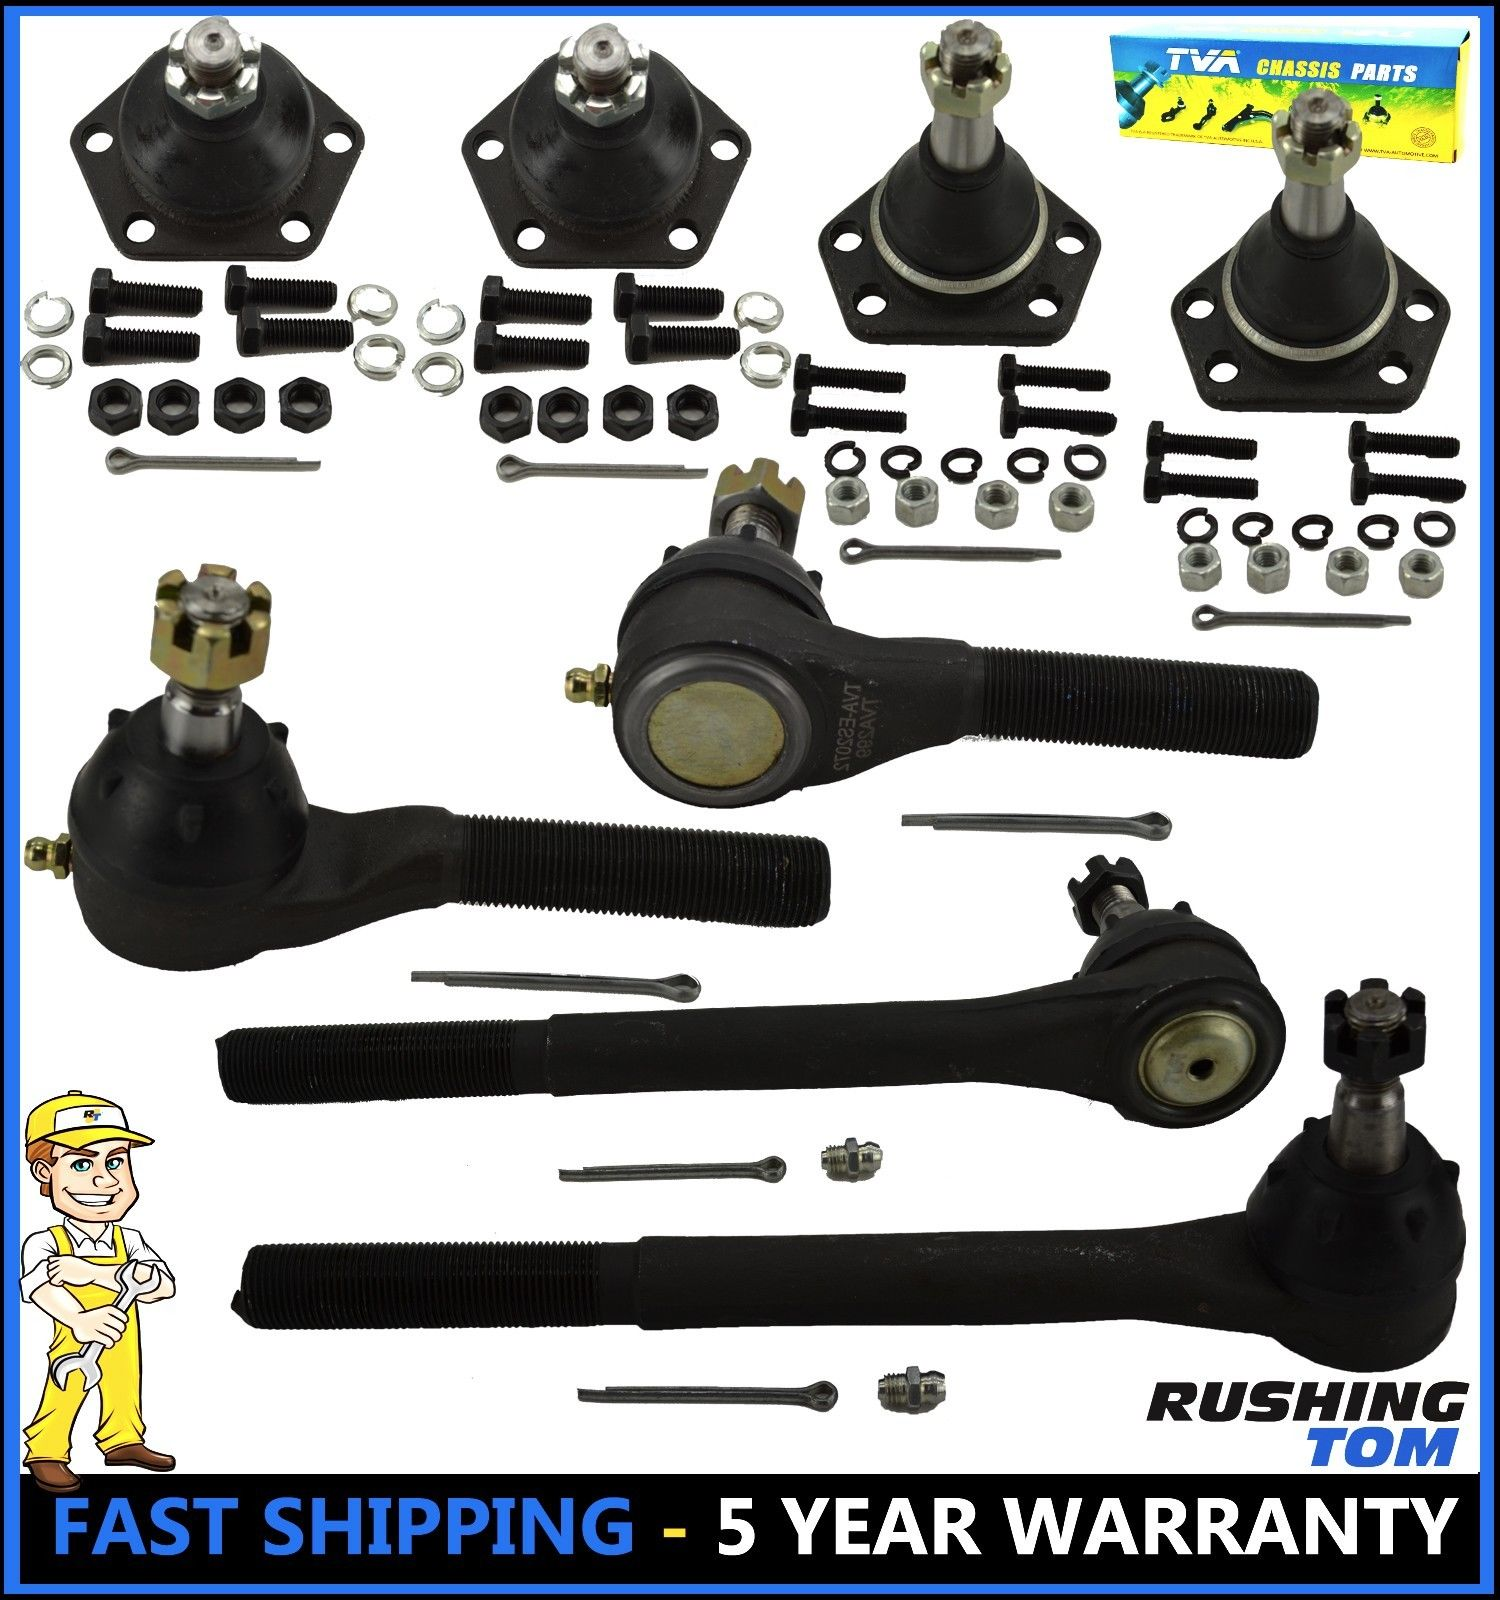 8 Pc Kit Upper Lower Ball Joint Inner Outer Tie Rod End Chevy GMC Blazer S10 4WD